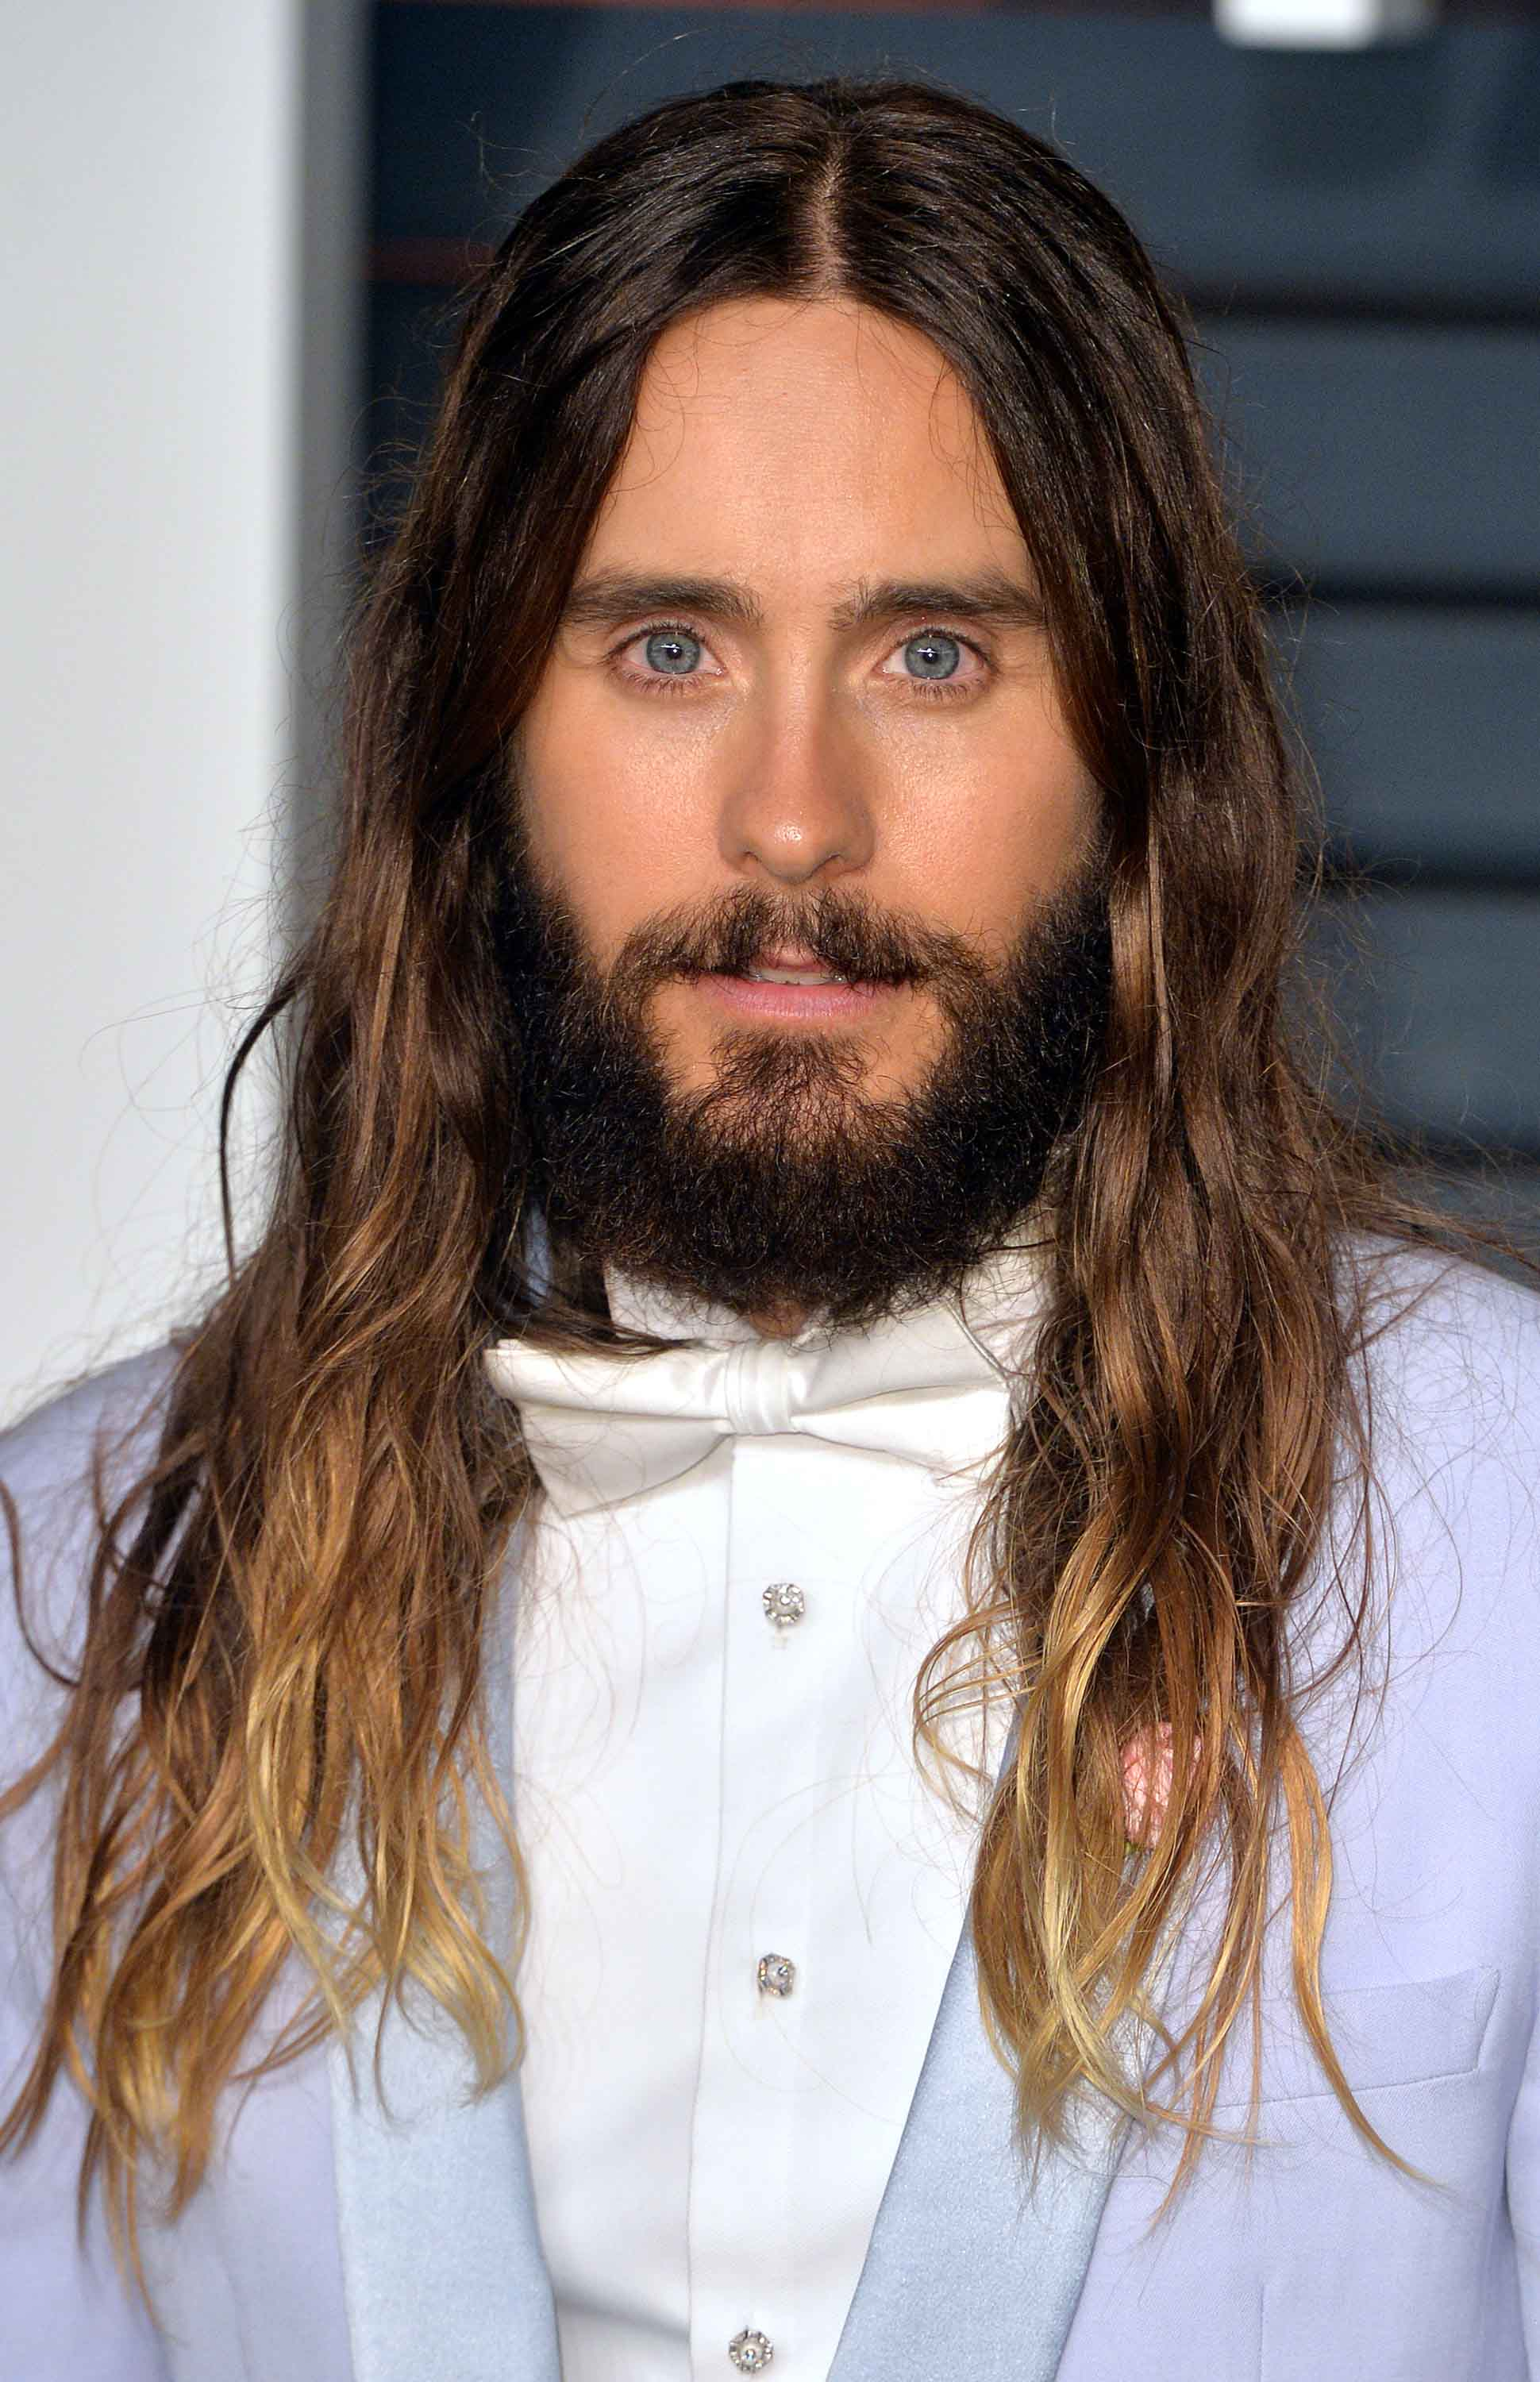 Guys with long hair: All Things Hair - IMAGE - Jared Leto ombre